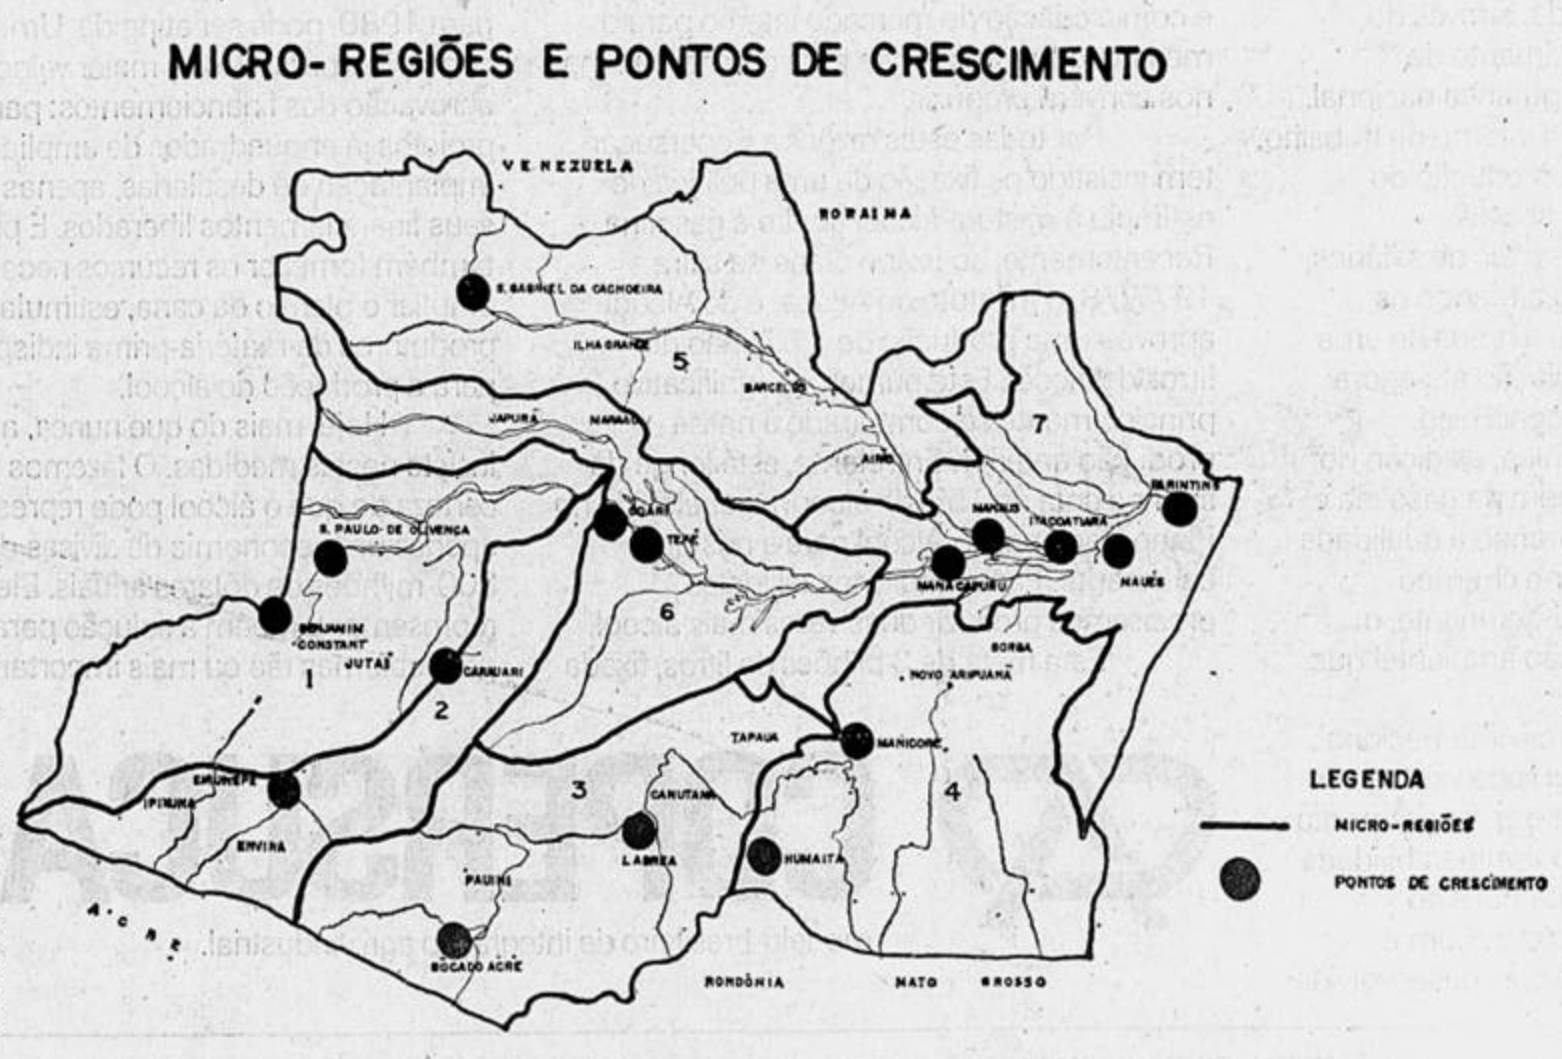 Map of the Amazon basin for the II National Development Plan - Jornal do Brasil (May 26, 1977)